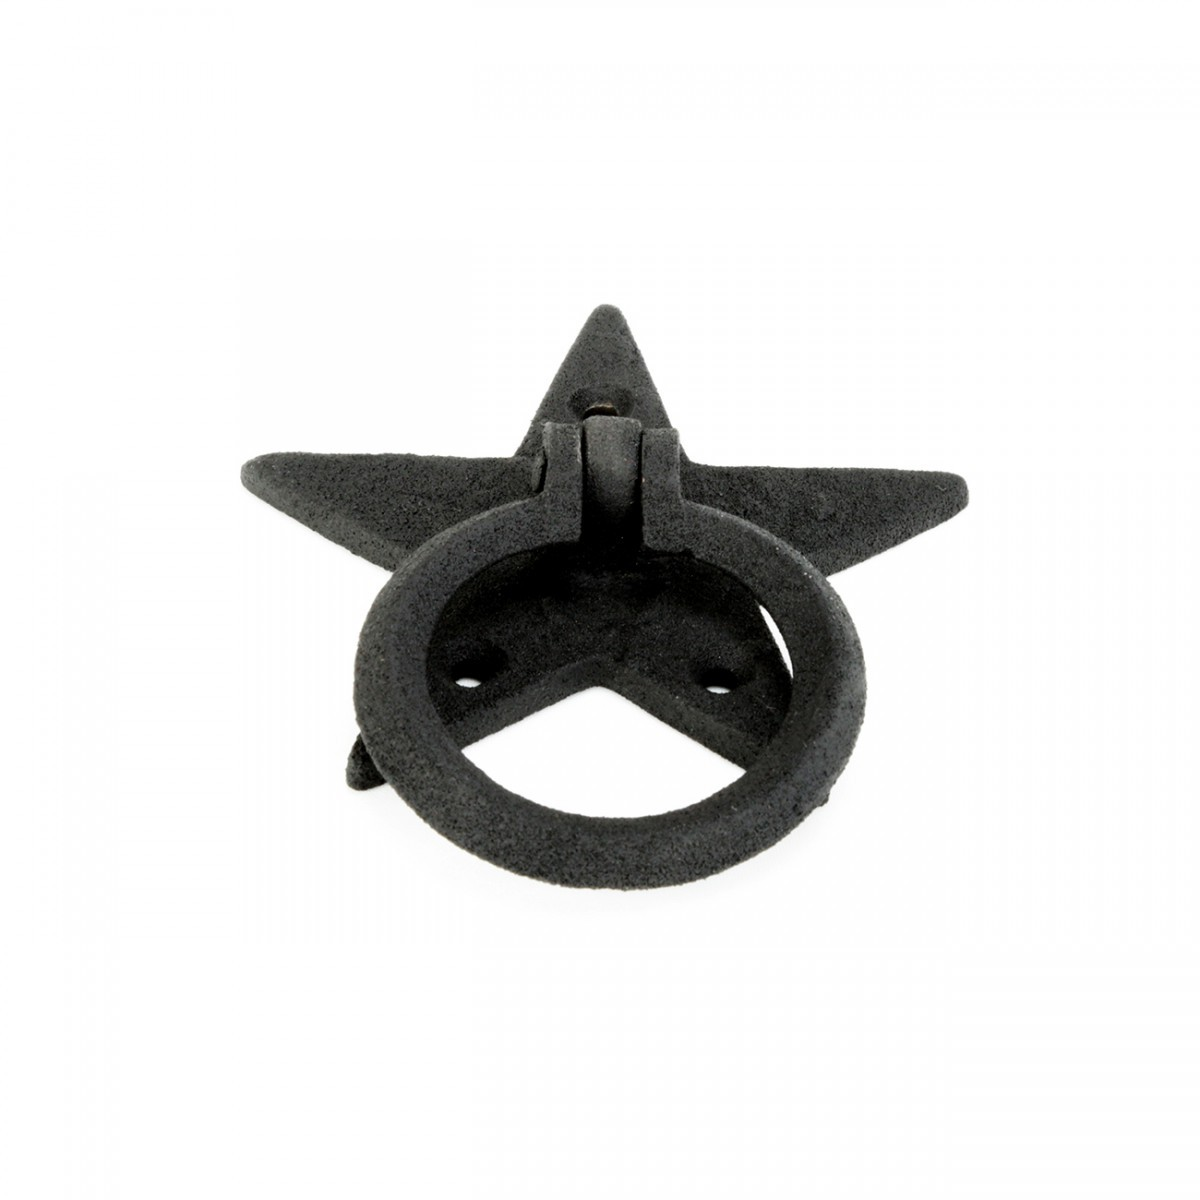 Cabinet Drawer Ring Pull Black Iron Southern Star Hardware Included Pack of 6 Cabinet Drawer Ring Pull Unique Cabinet Pull